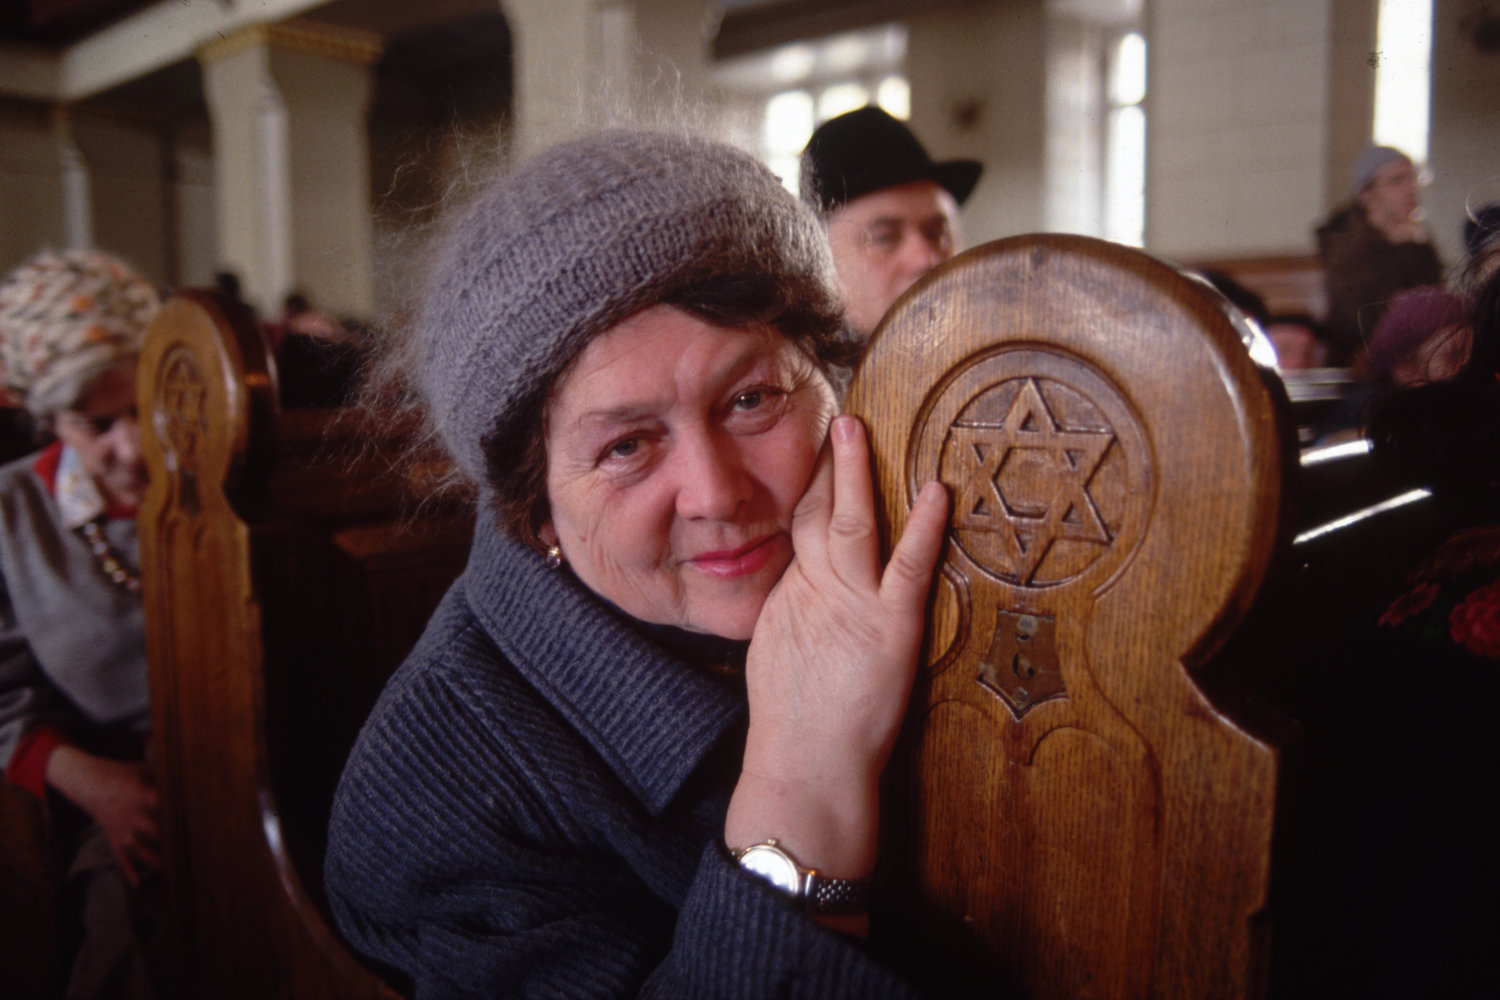 """Synagogue. Moscow, U.S.S.R., 1990.<span class=""""photo-essays-link""""><span class=""""separator"""">・</span><a href=""""/photo-essays"""">Photo-essays</a></span>"""